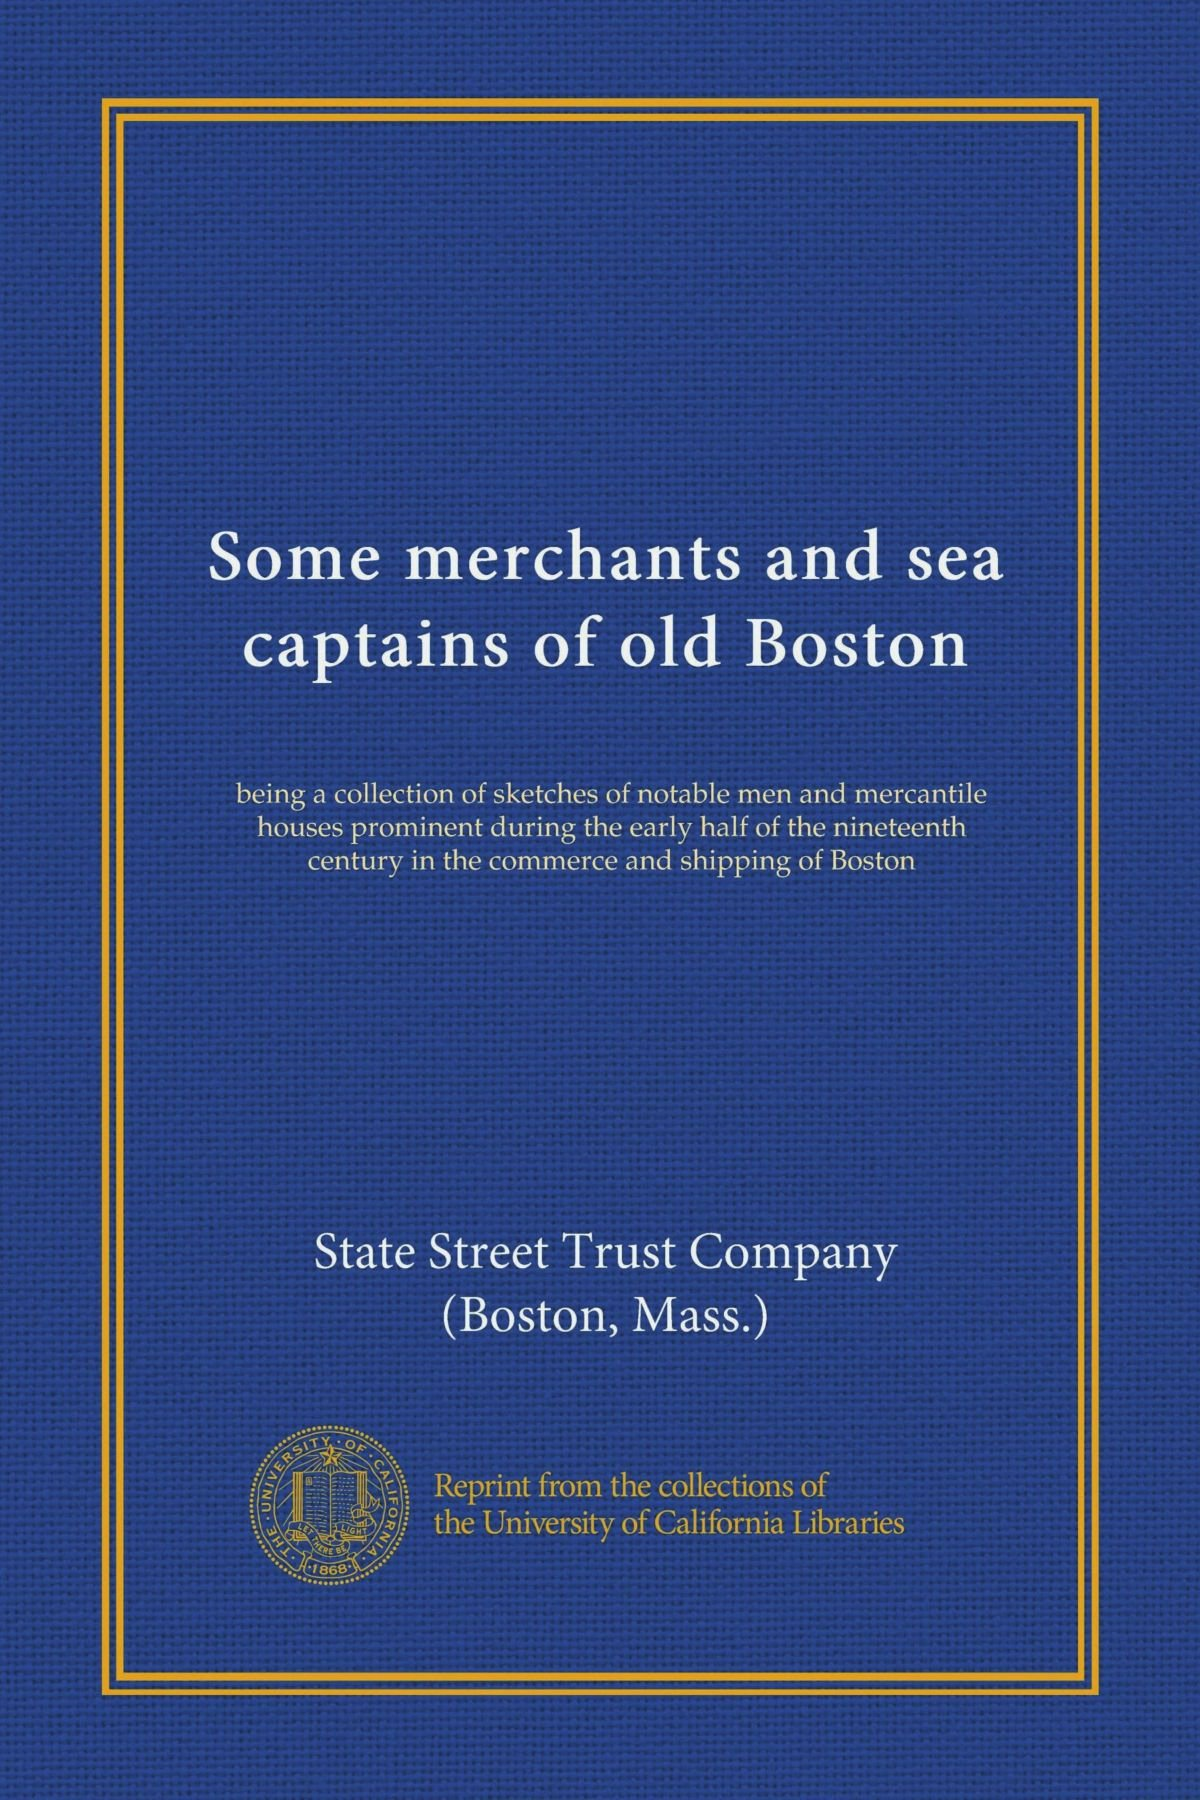 Download Some merchants and sea captains of old Boston: being a collection of sketches of notable men and mercantile houses prominent during the early half of ... in the commerce and shipping of Boston pdf